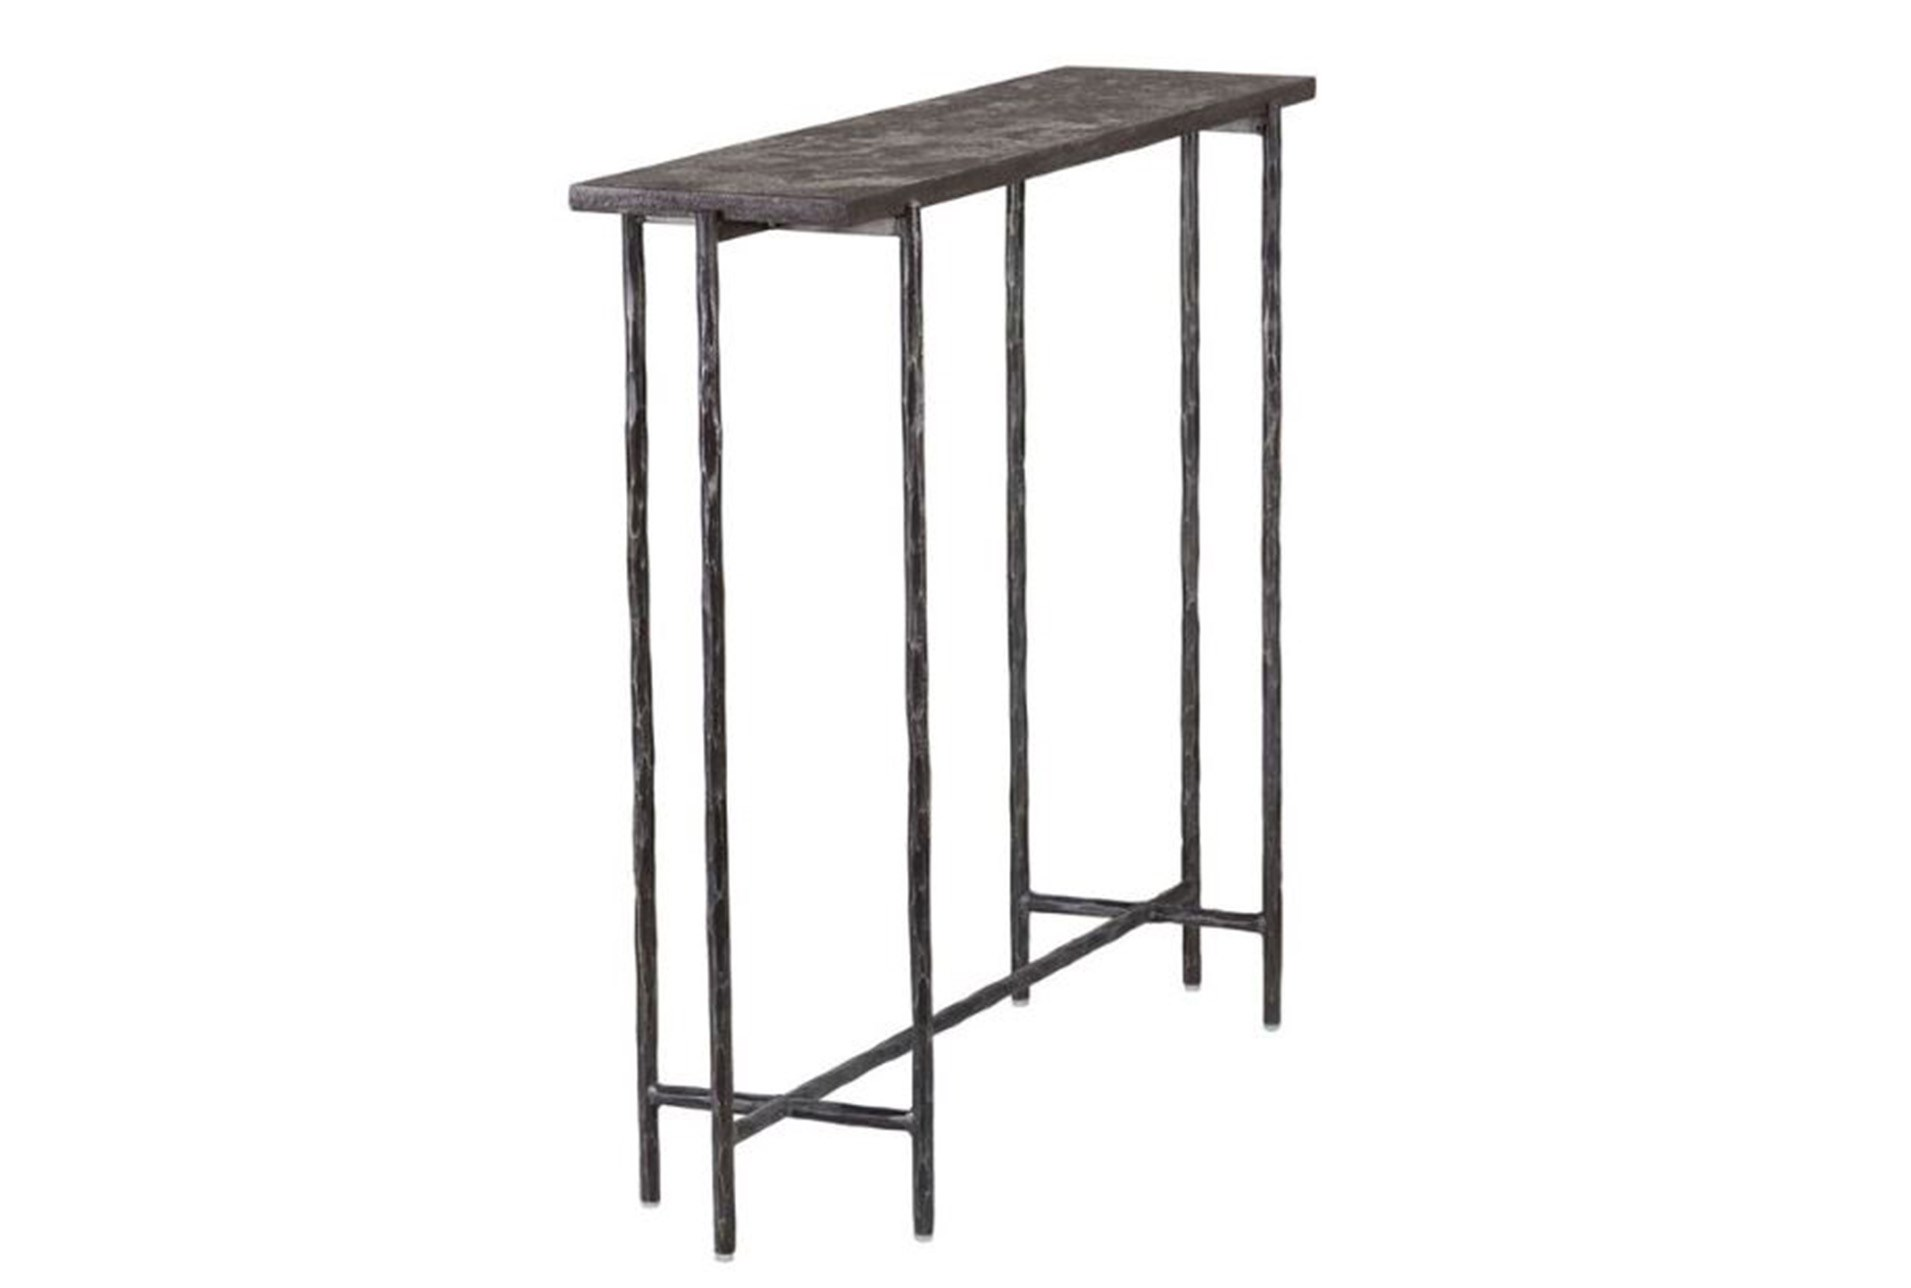 Cast Iron 35 Inch Console Table W Stone Qty 1 Has Been Successfully Added To Your Cart